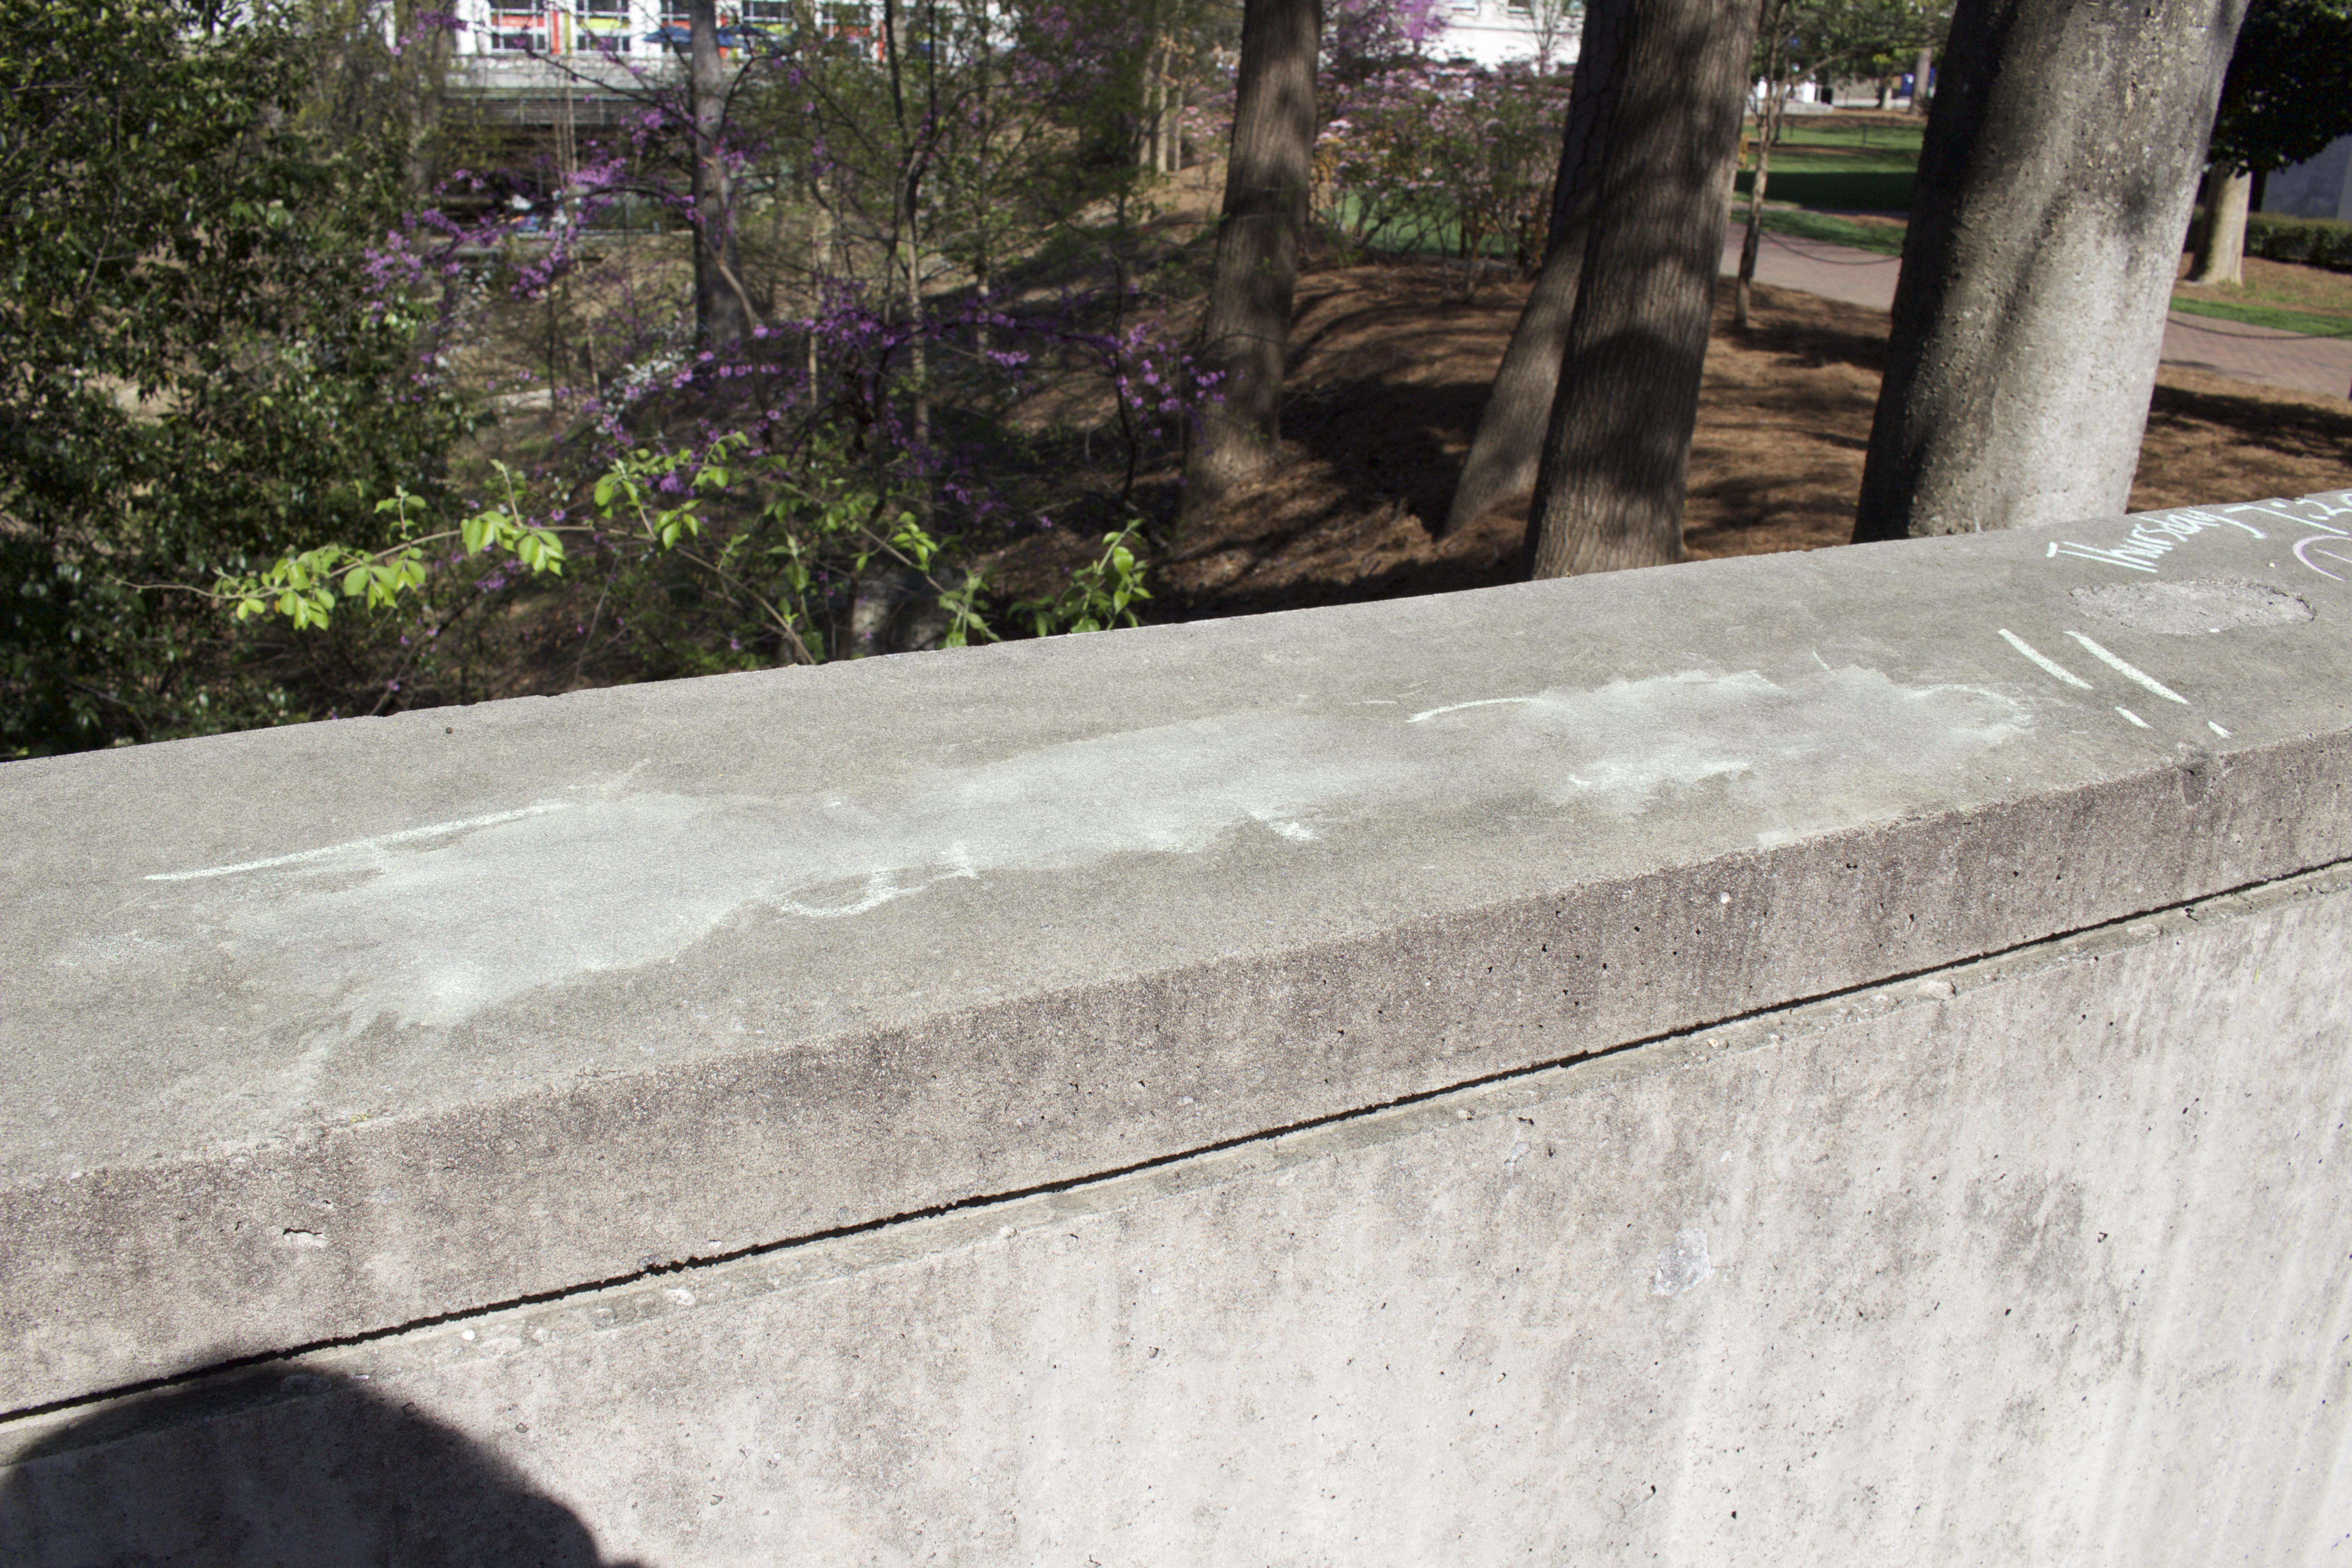 Emory Students Express Discontent With Administrative Response to